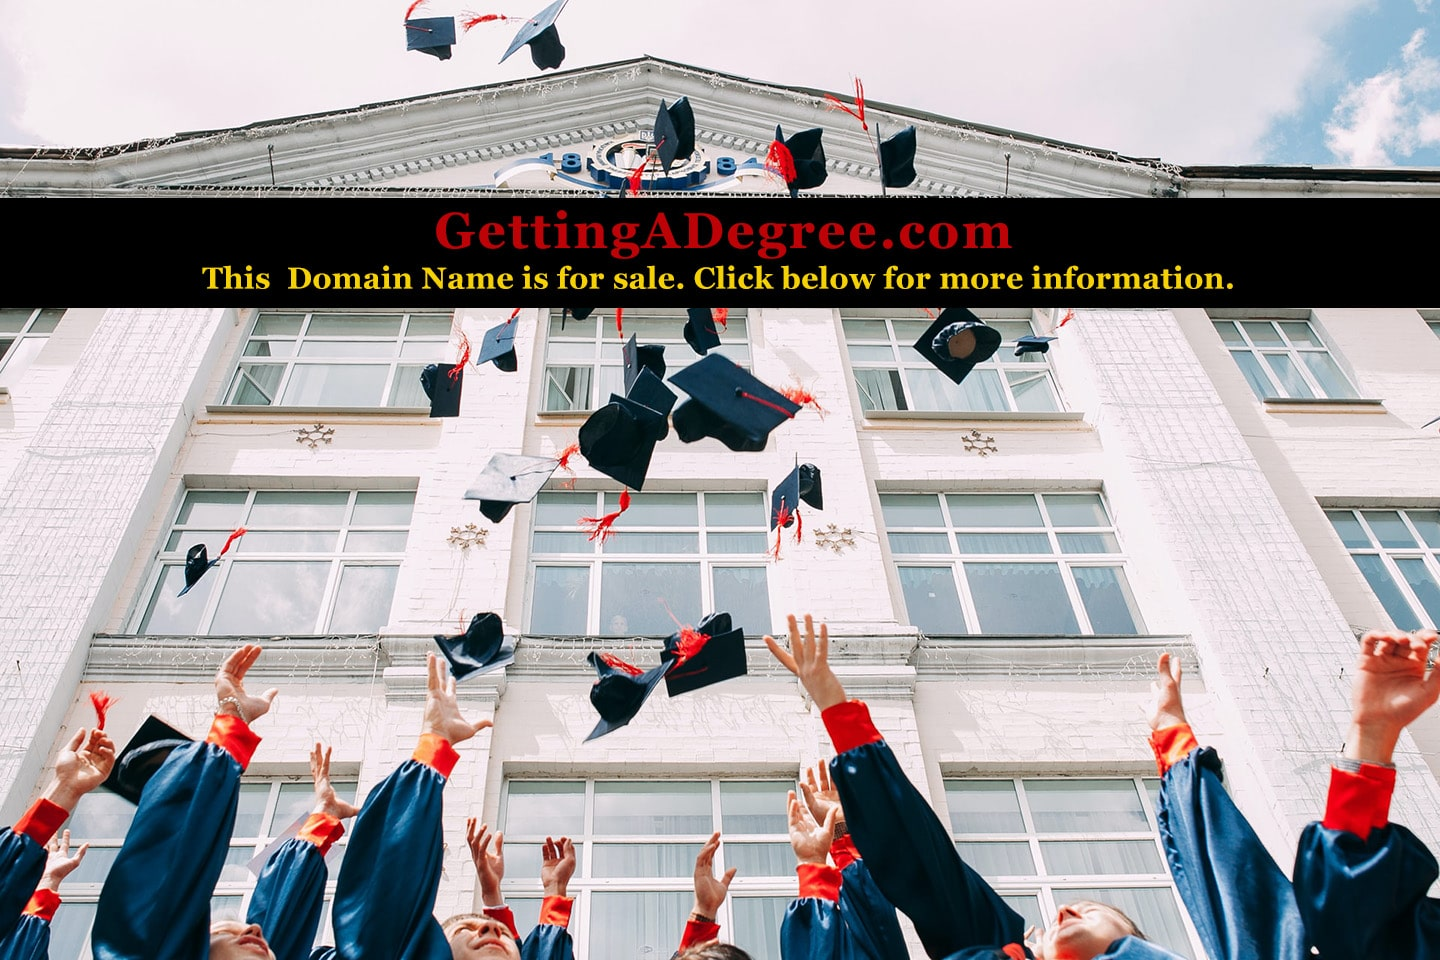 Getting a degree - Information article and domain sale information